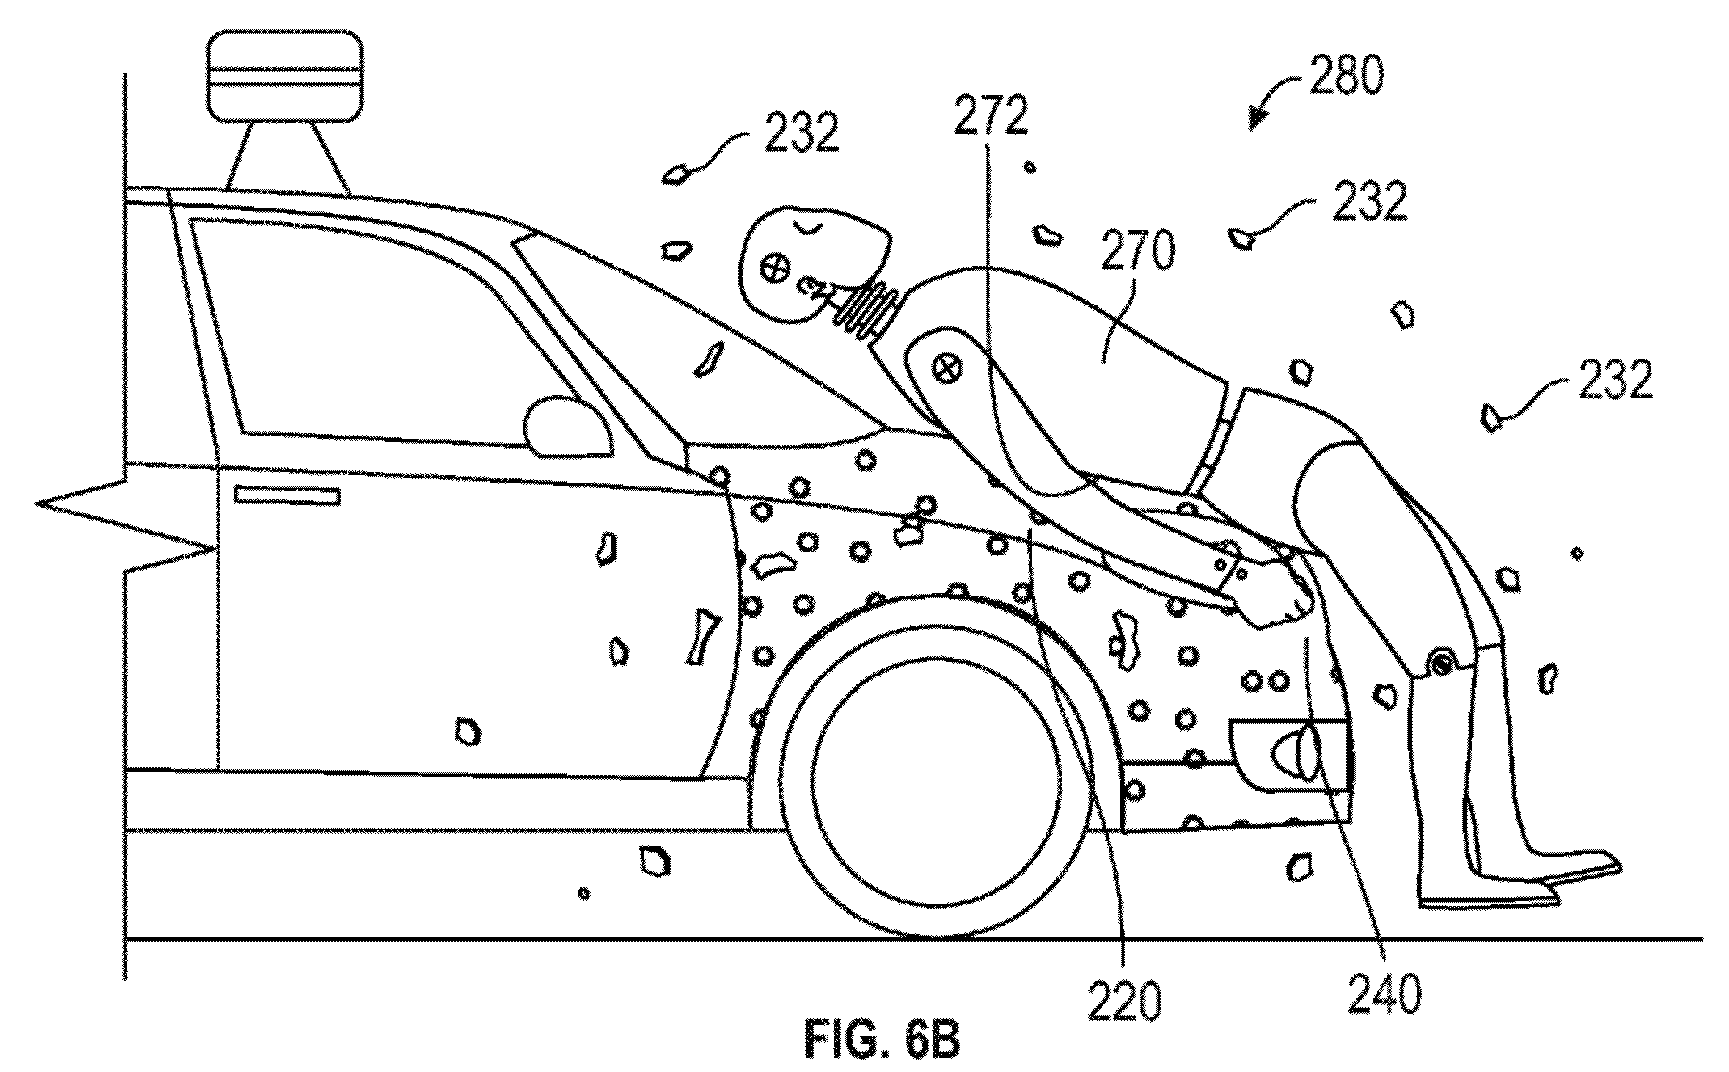 Google's Pedestrian Flypaper Patent